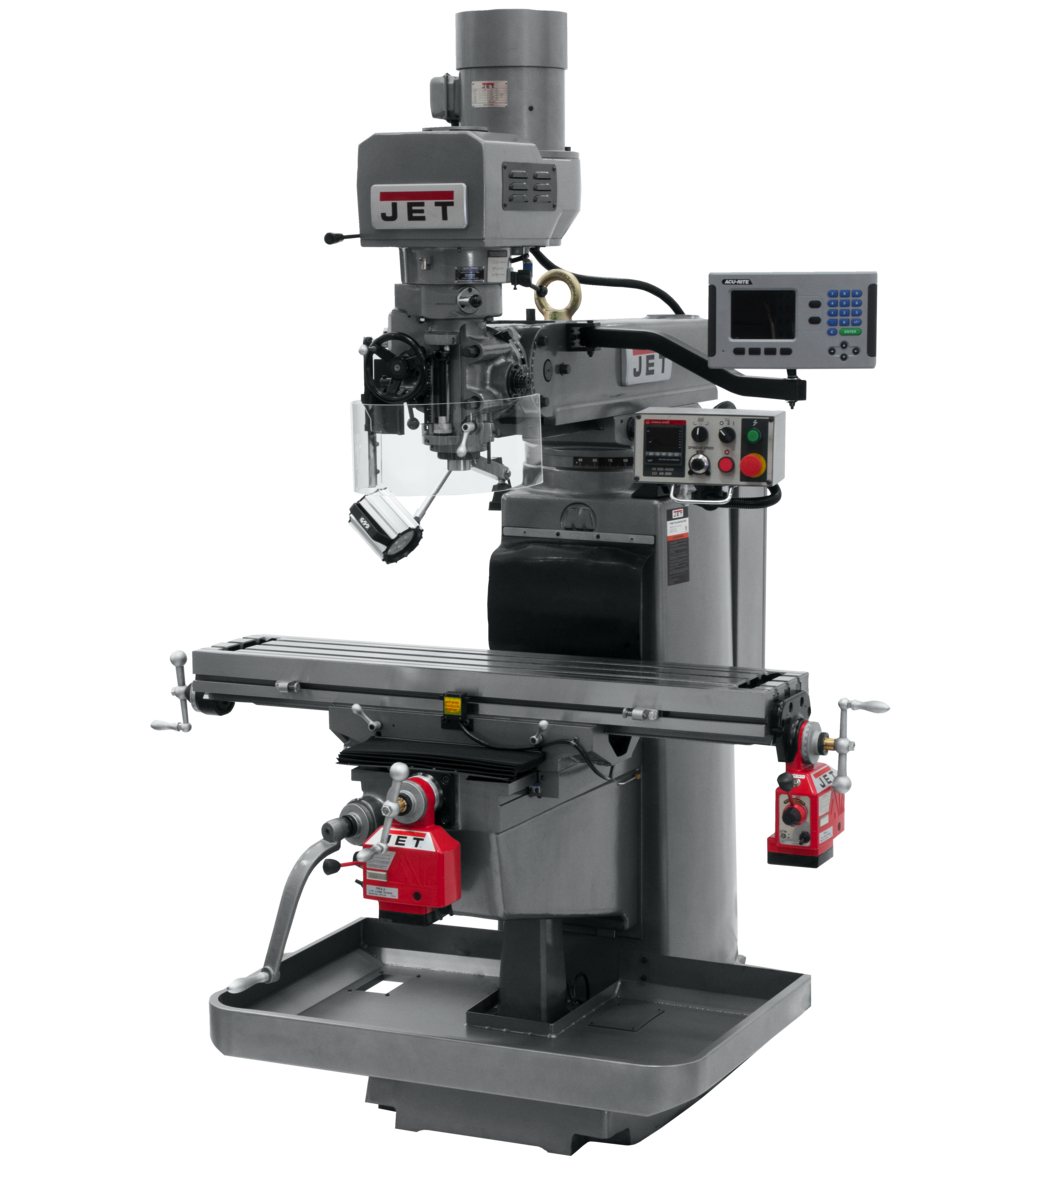 JTM-1050EVS2/230 Mill With Acu-Rite 203 DRO With X and Y-Axis Powerfeeds